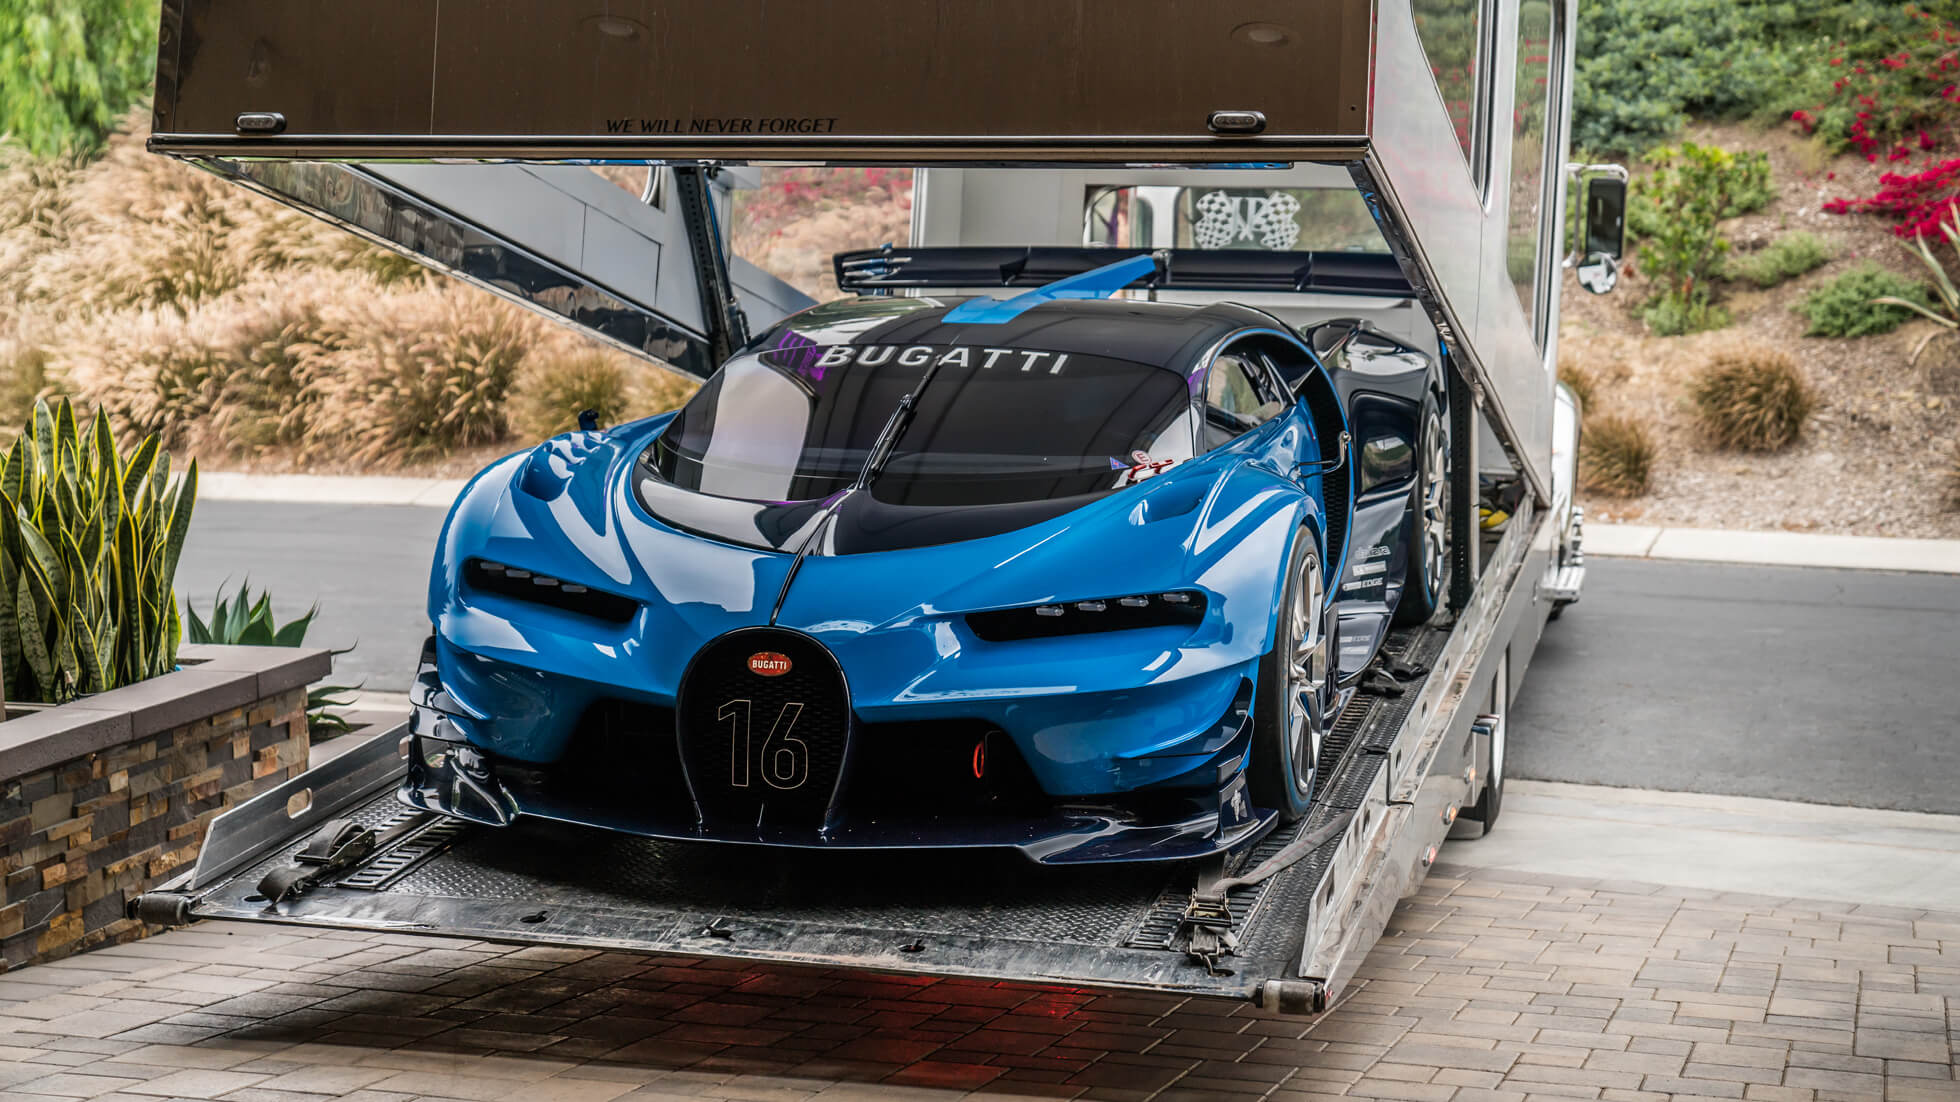 Bugatti Vision Gt >> Exotic Bugatti Vision Gt 1of1 Delivered In Beverly Hills